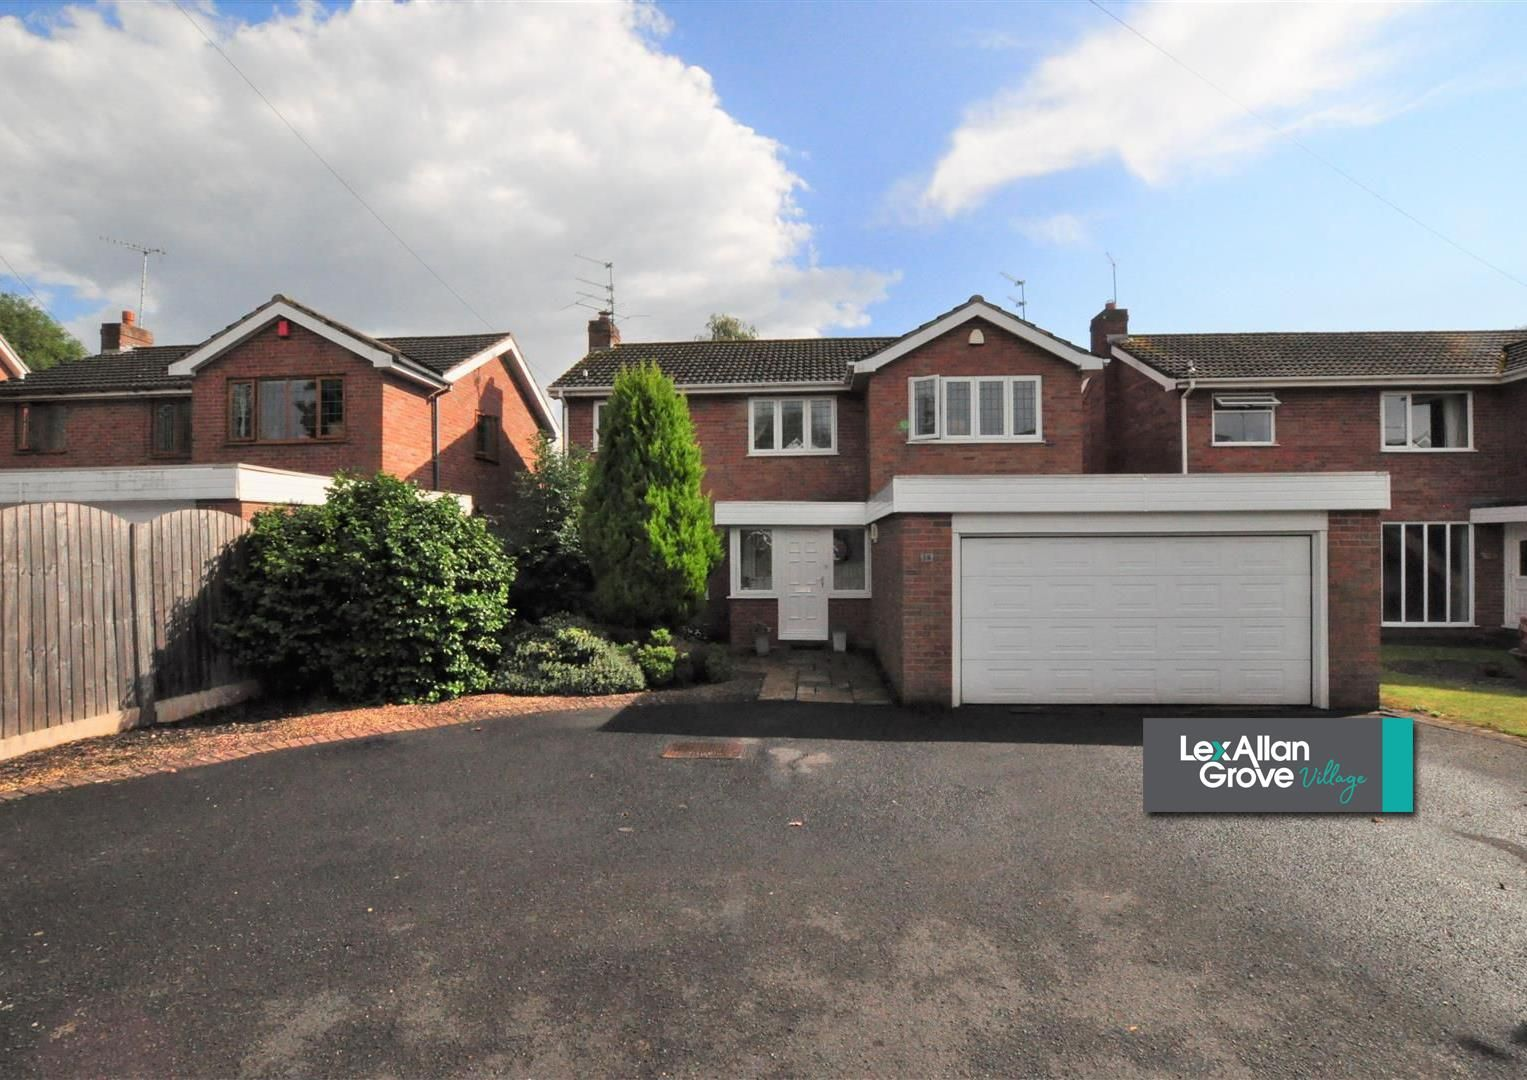 4 bed house for sale in Hagley 29